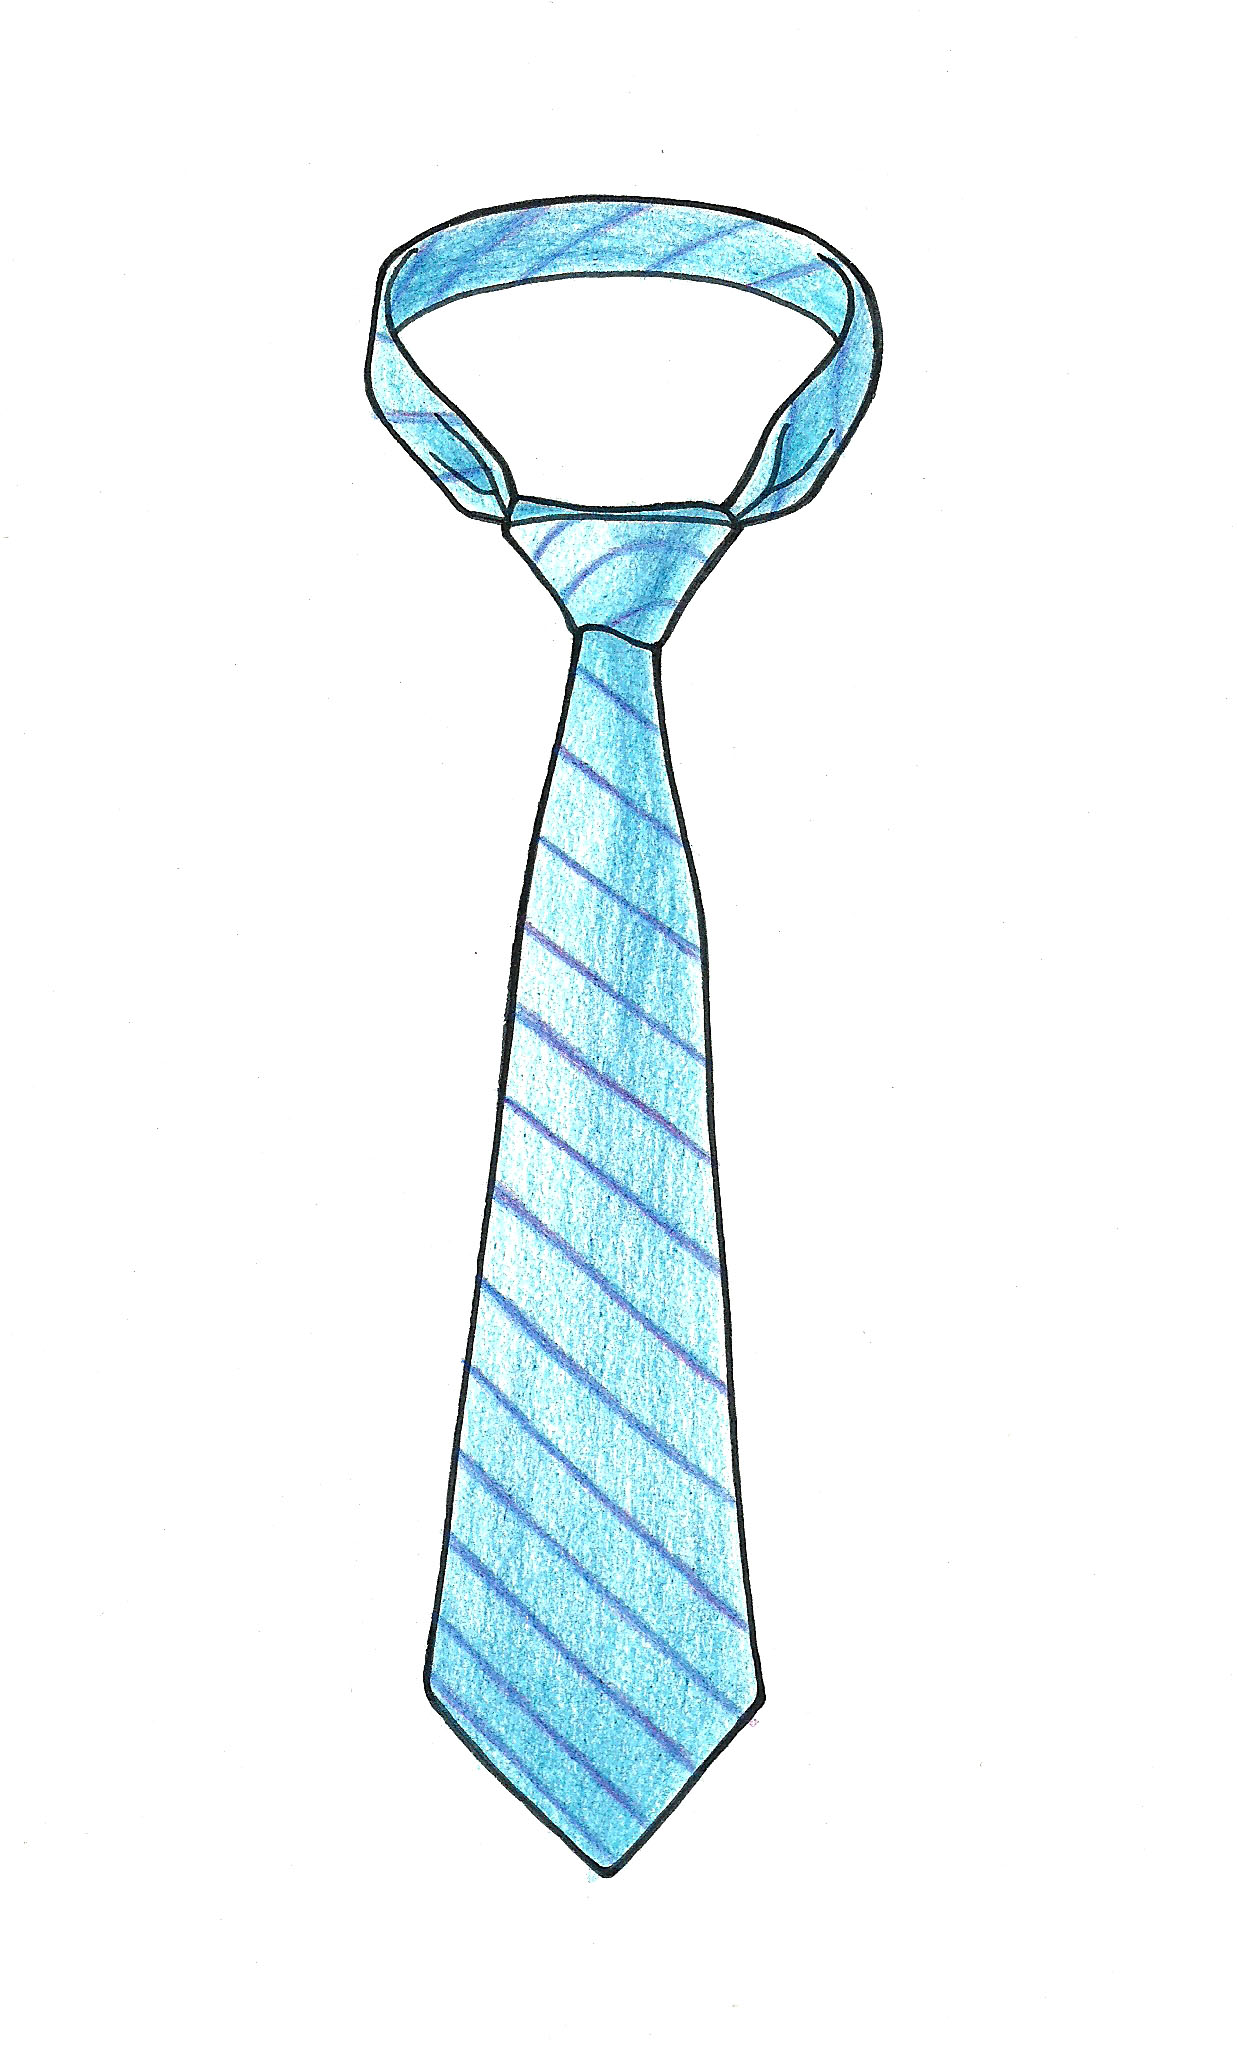 Tie drawing at getdrawings free for personal use tie drawing 1237x2068 15 it tie opinions on tie draw ccuart Images